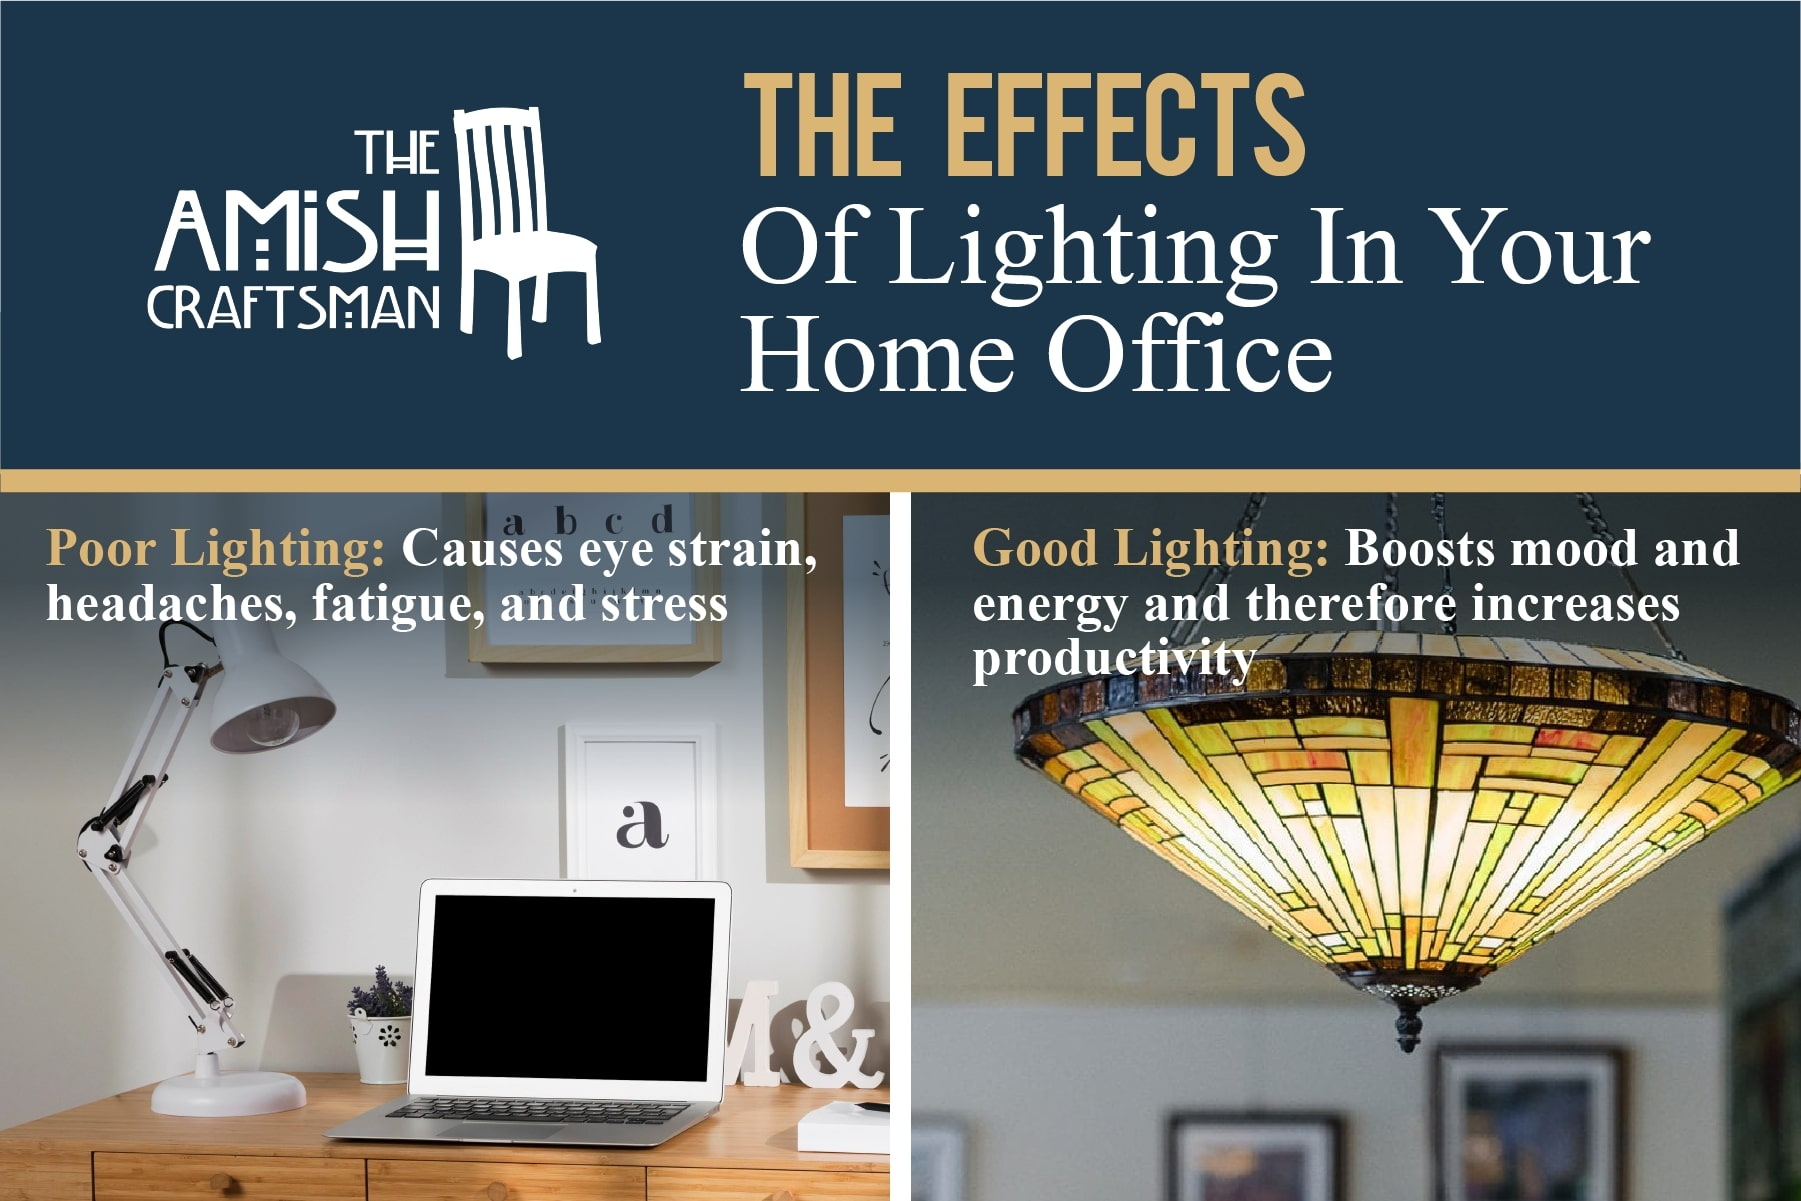 the effects of lighting in your home office